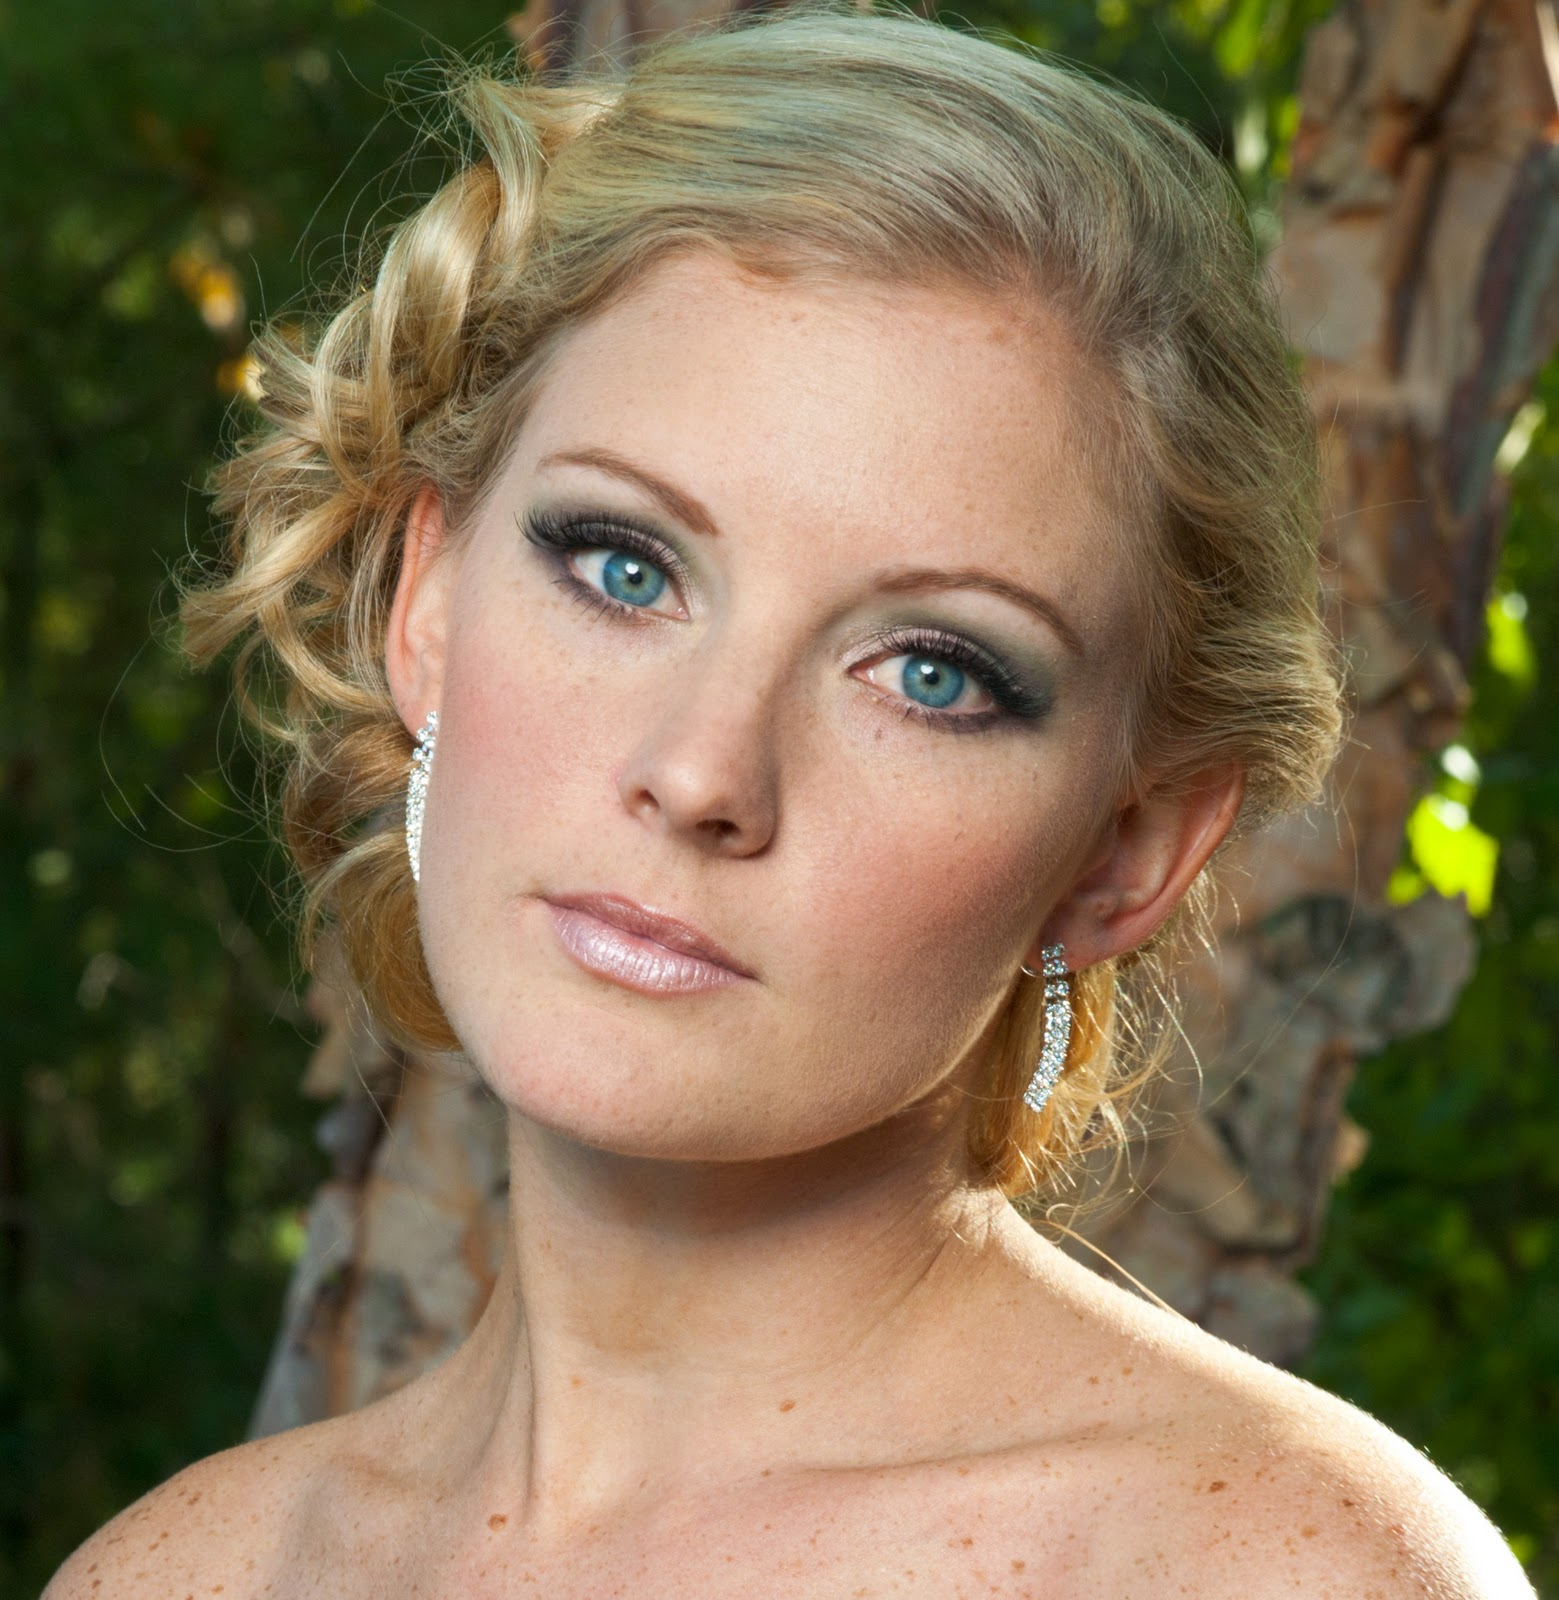 Makeup Ideas For Wedding Blue Eyes : Wedding Makeup Tips for Blue-Eyed Brides with Blond Hair ...